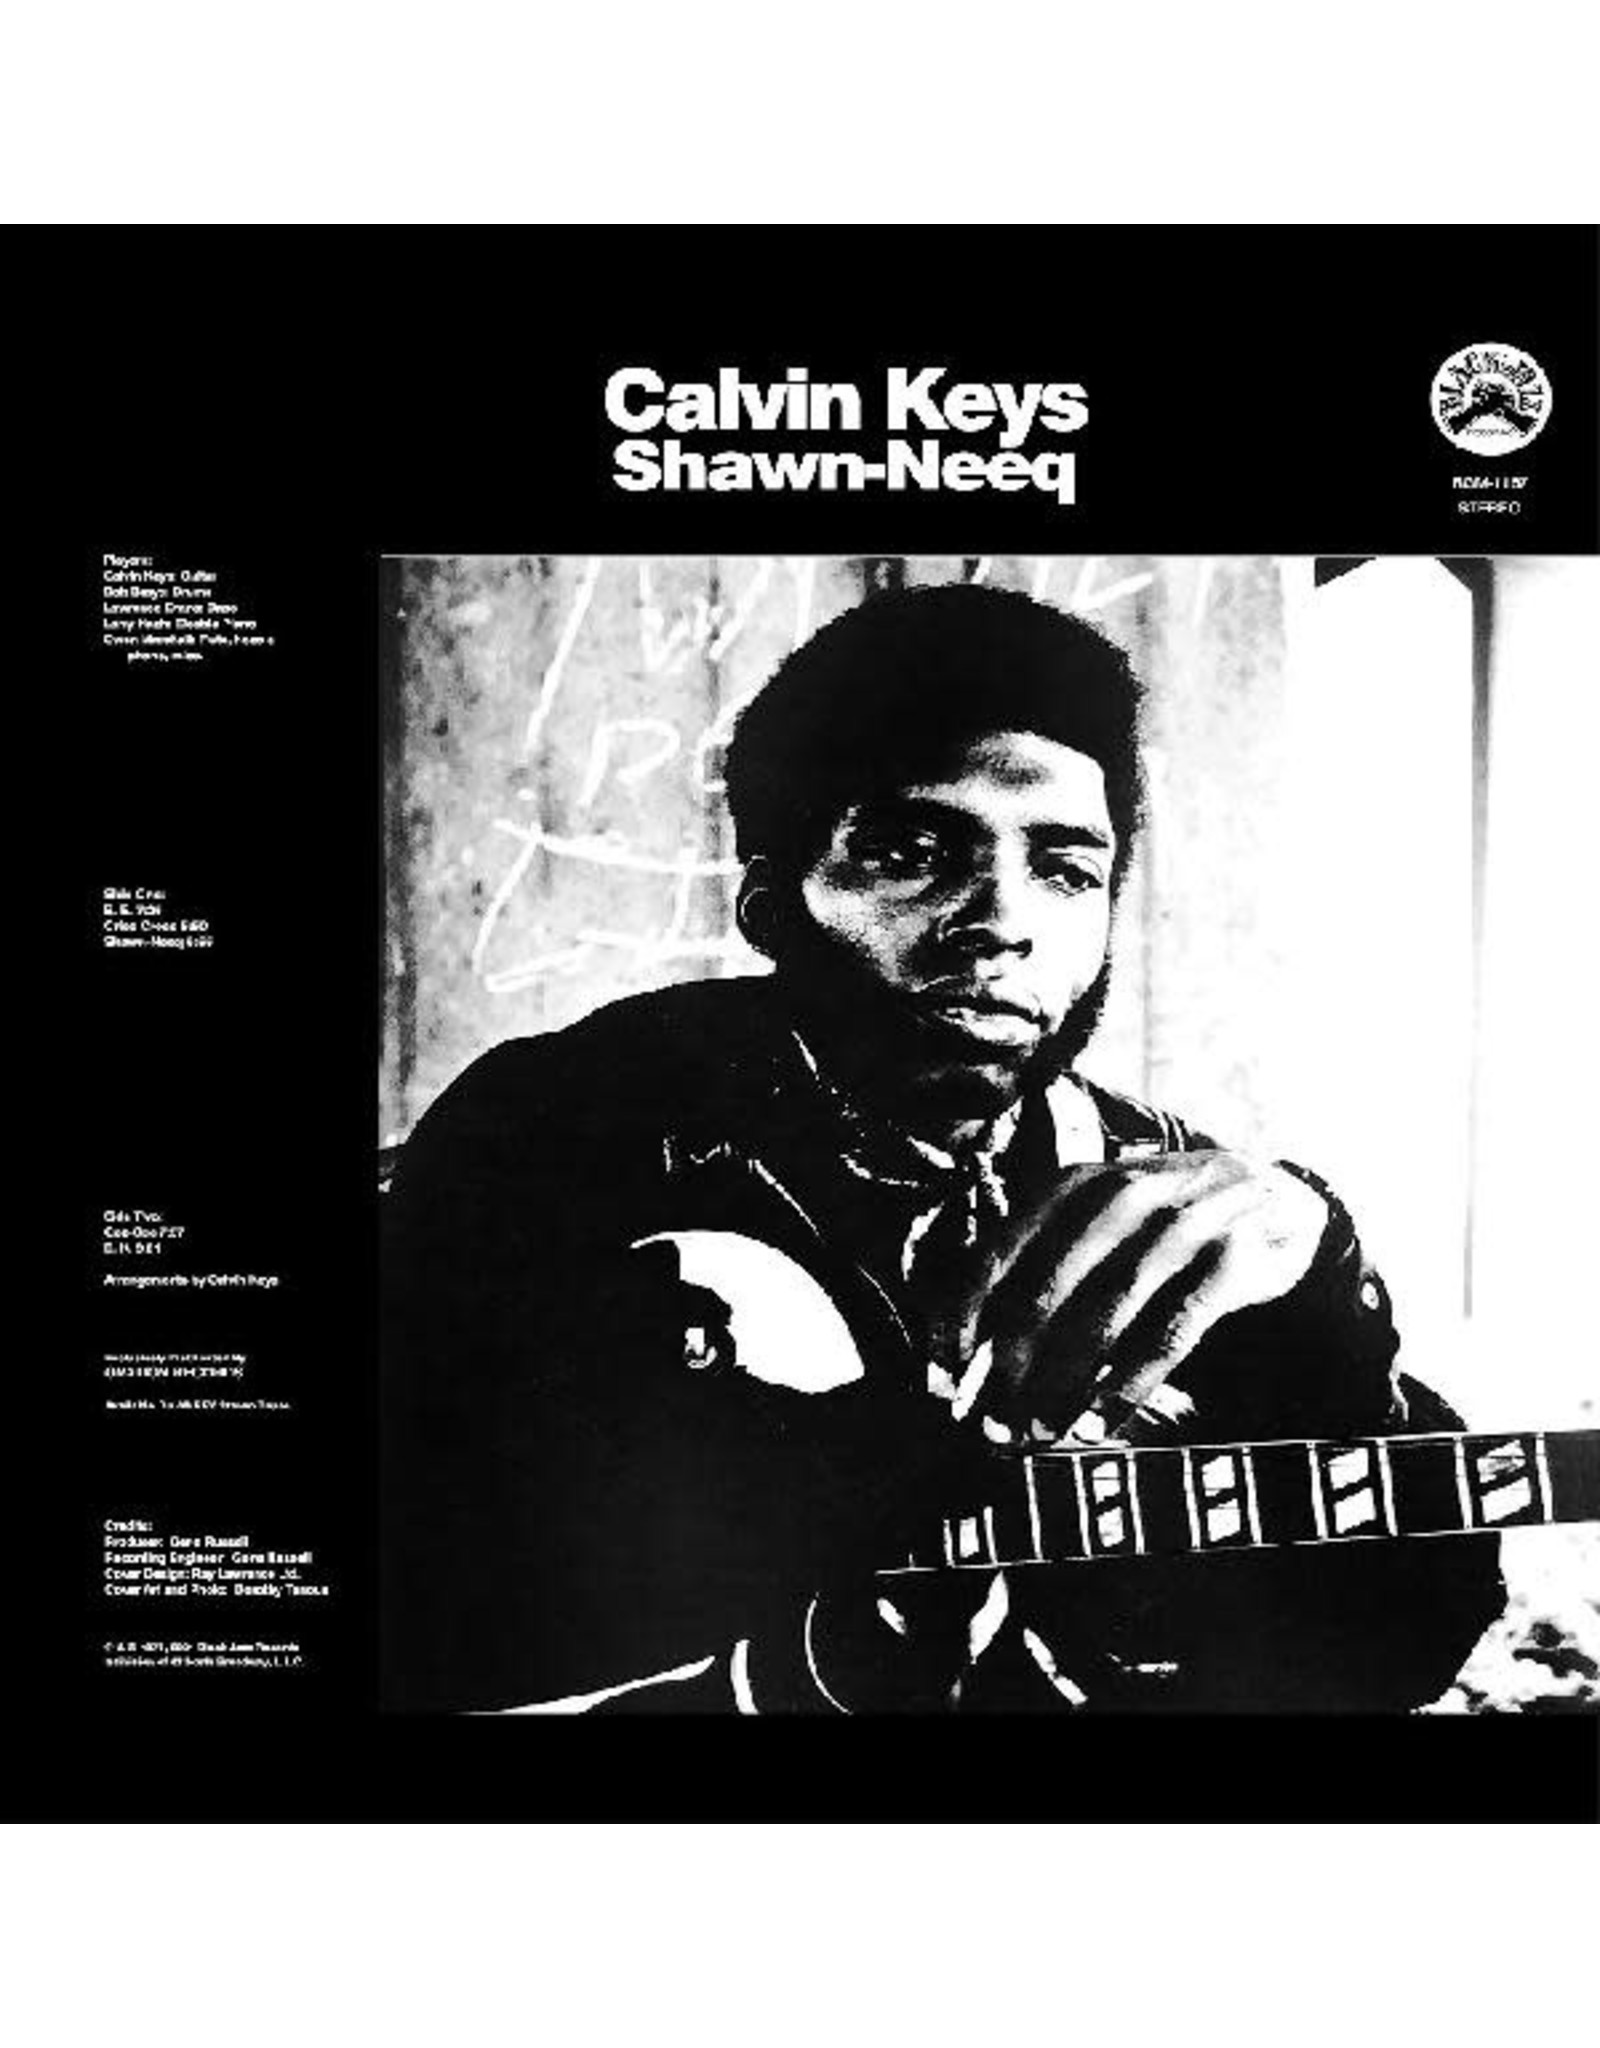 New Vinyl Calvin Keys - Shawn-Neeq LP